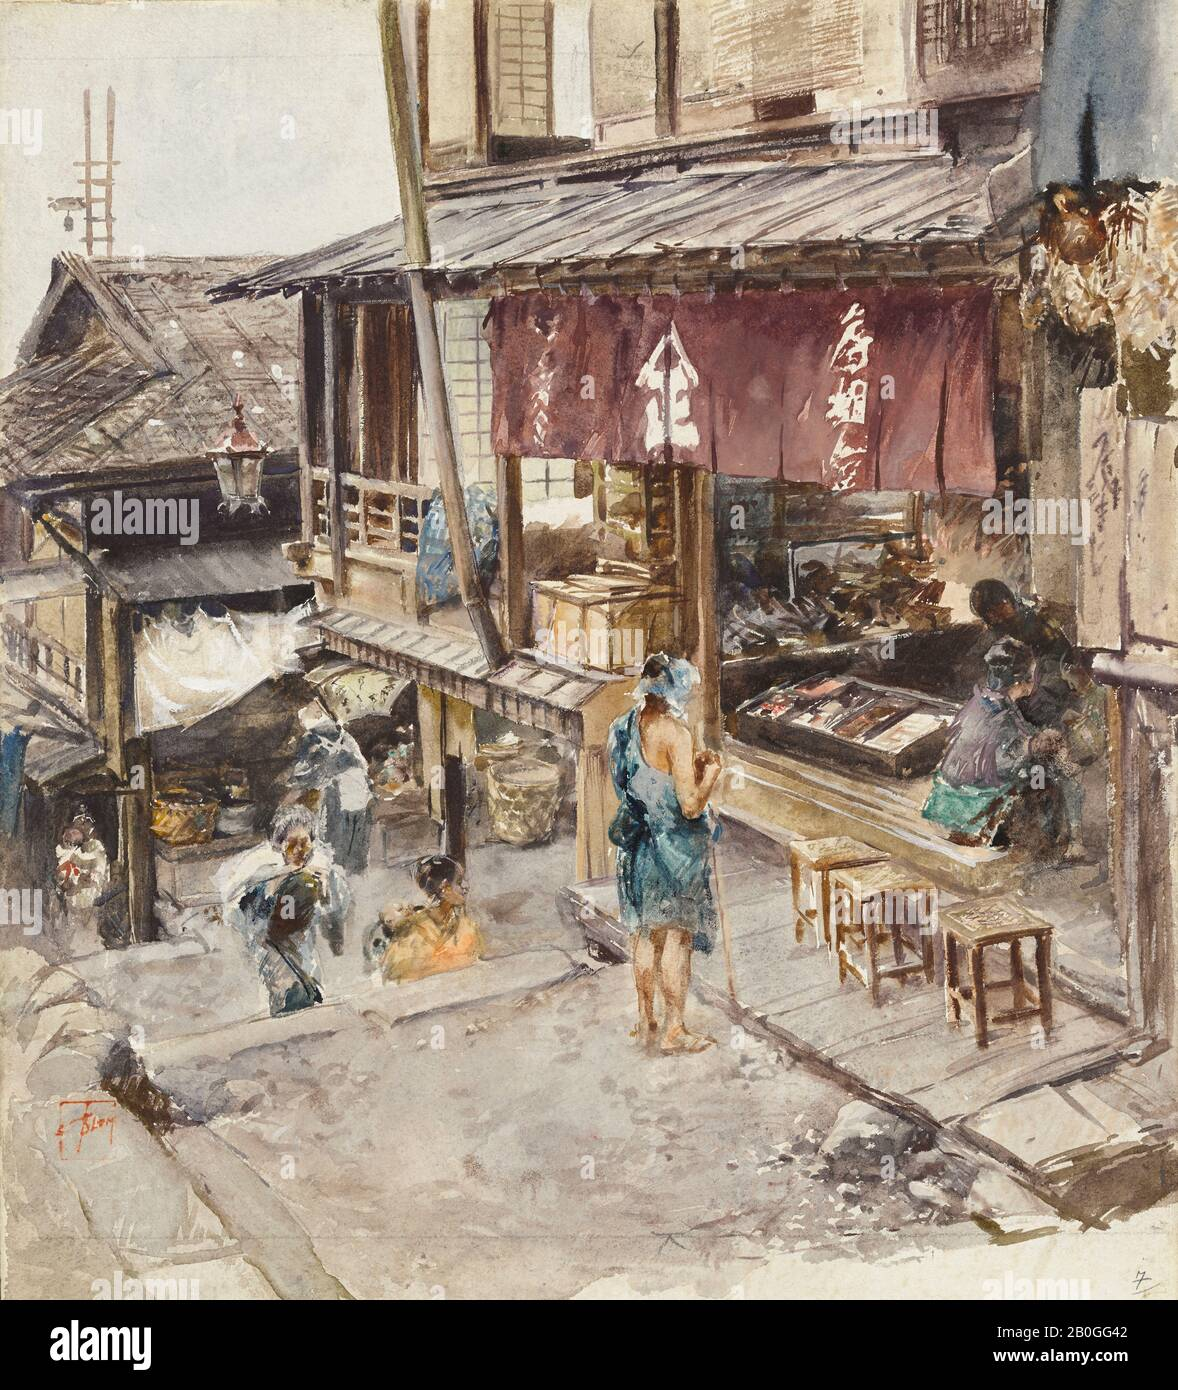 Robert Frederick Blum American 1857 1903 A Street In Ikao Japan Iii 1890 Watercolor And White Gouache Over Pencil On Paper Overall 12 1 16 X 10 7 8 In 30 6 X 27 6 Cm Stock Photo Alamy